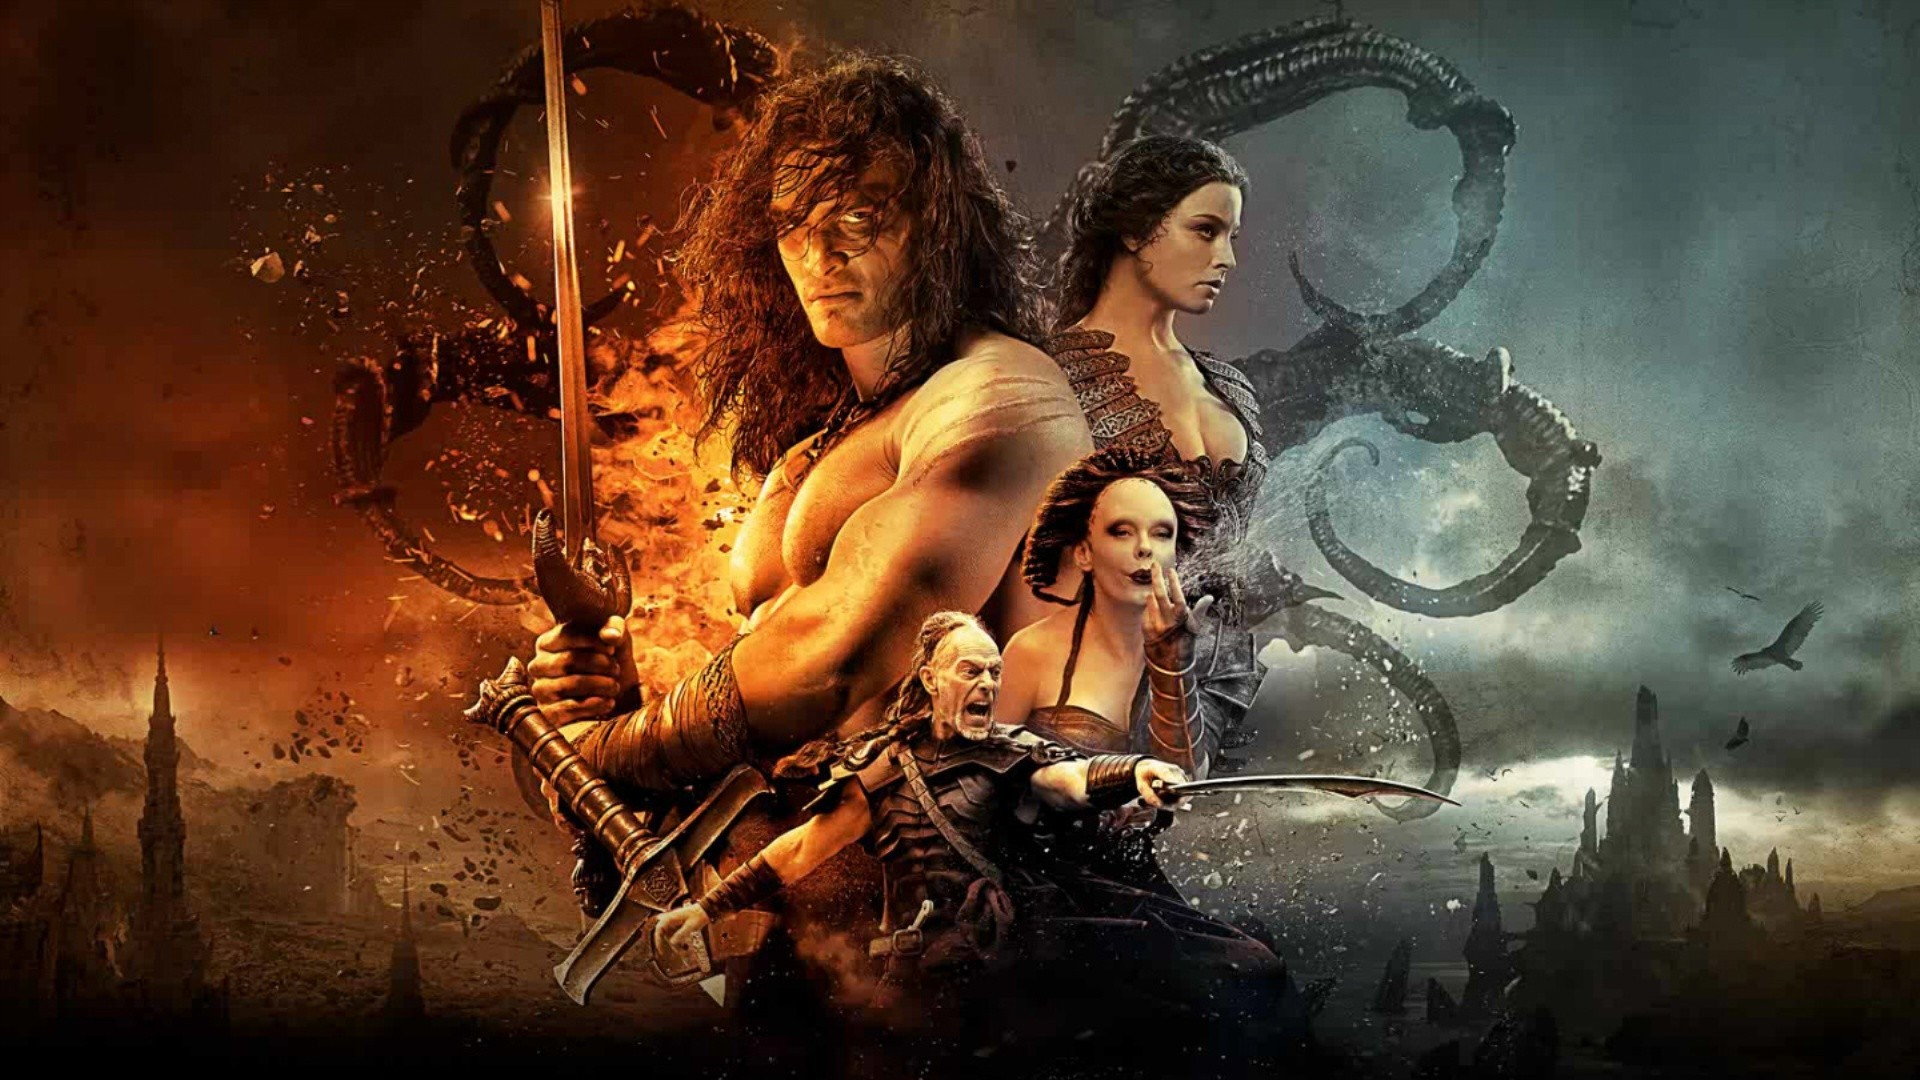 Conan the Barbarian Wallpapers 3 HD Desktop Wallpapers 1920x1080